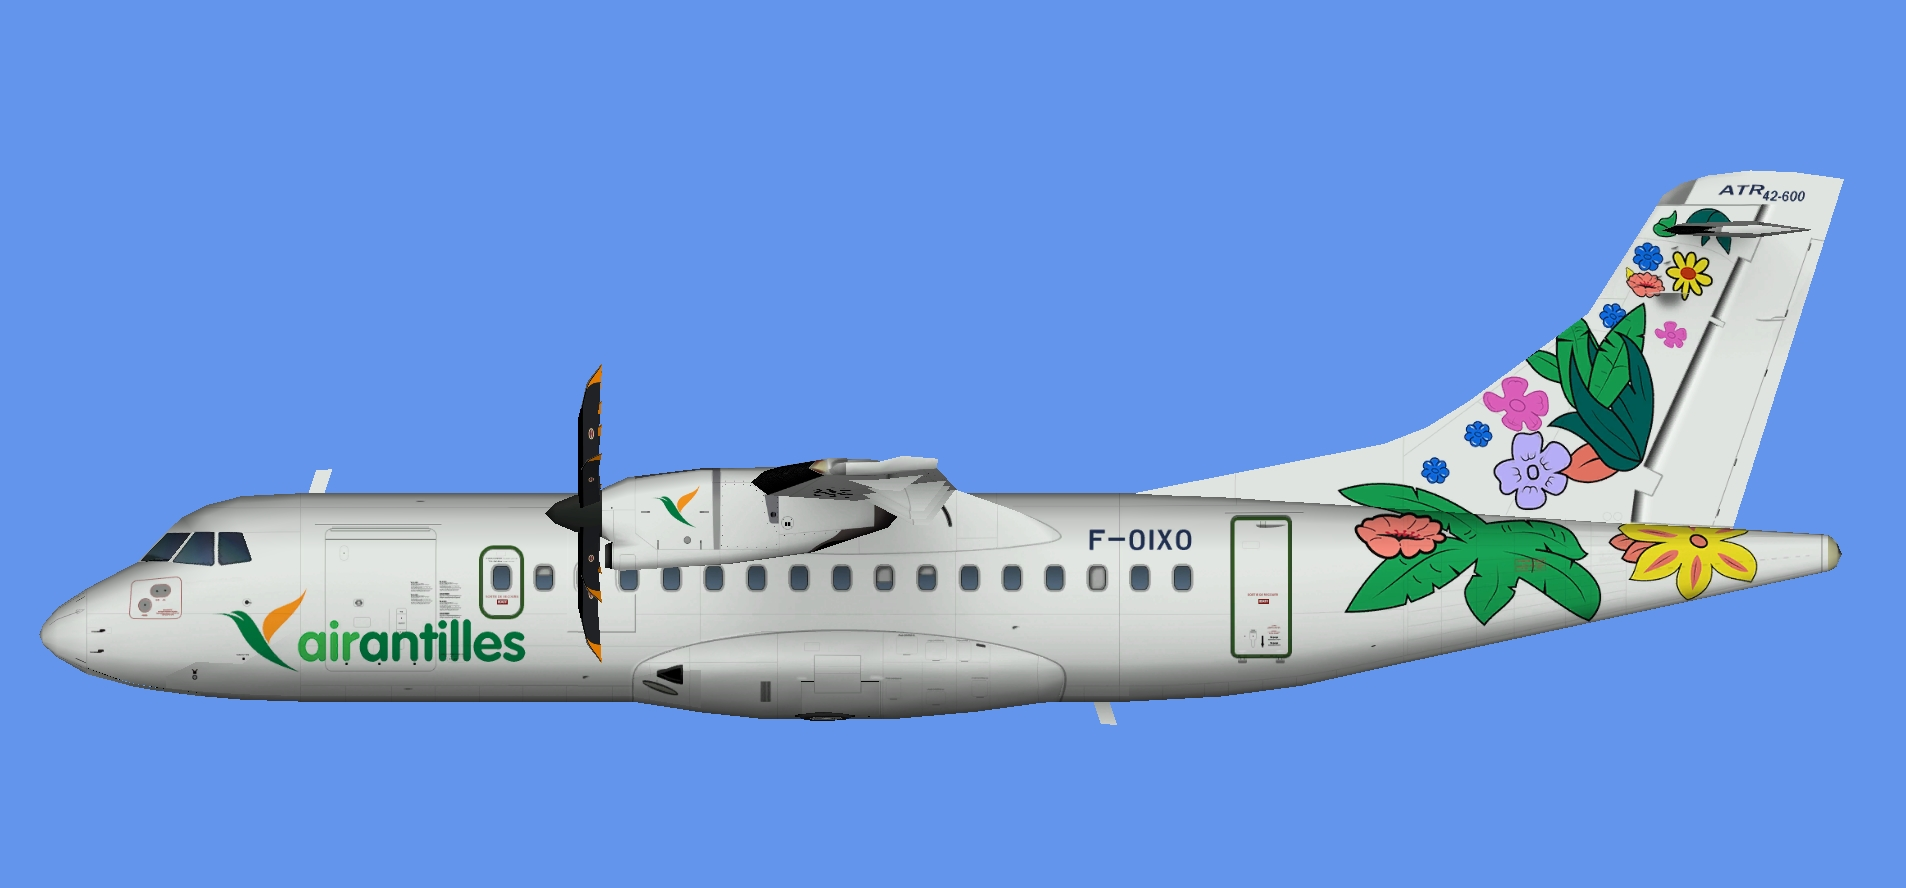 Air Antilles Express ATR 42-600